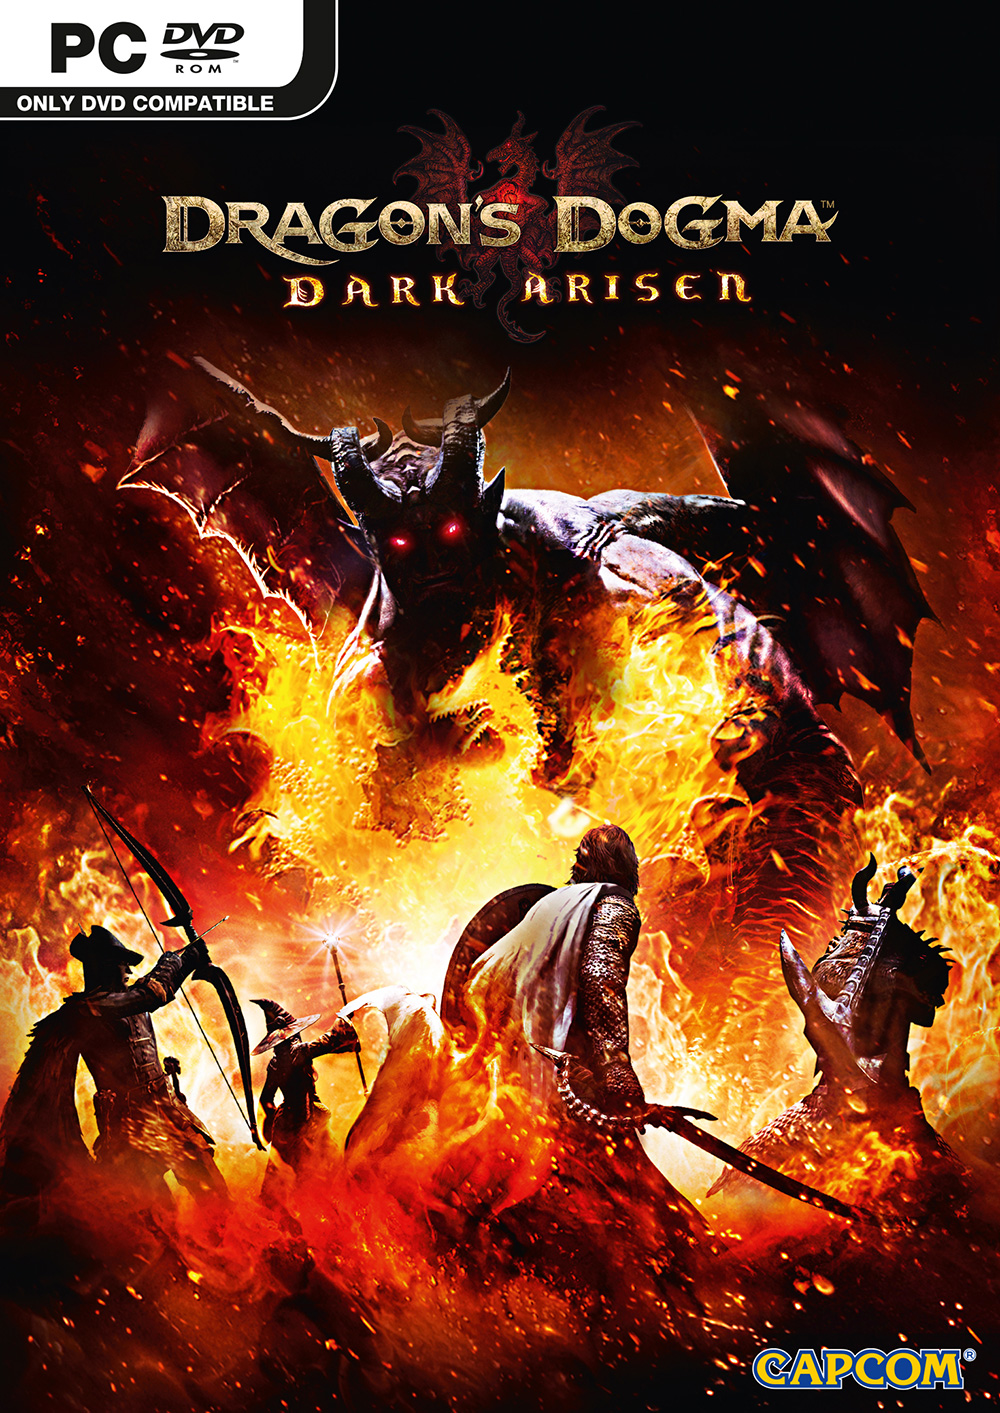 Dragons-Dogma-Dark-Arisen-PC-Boxart